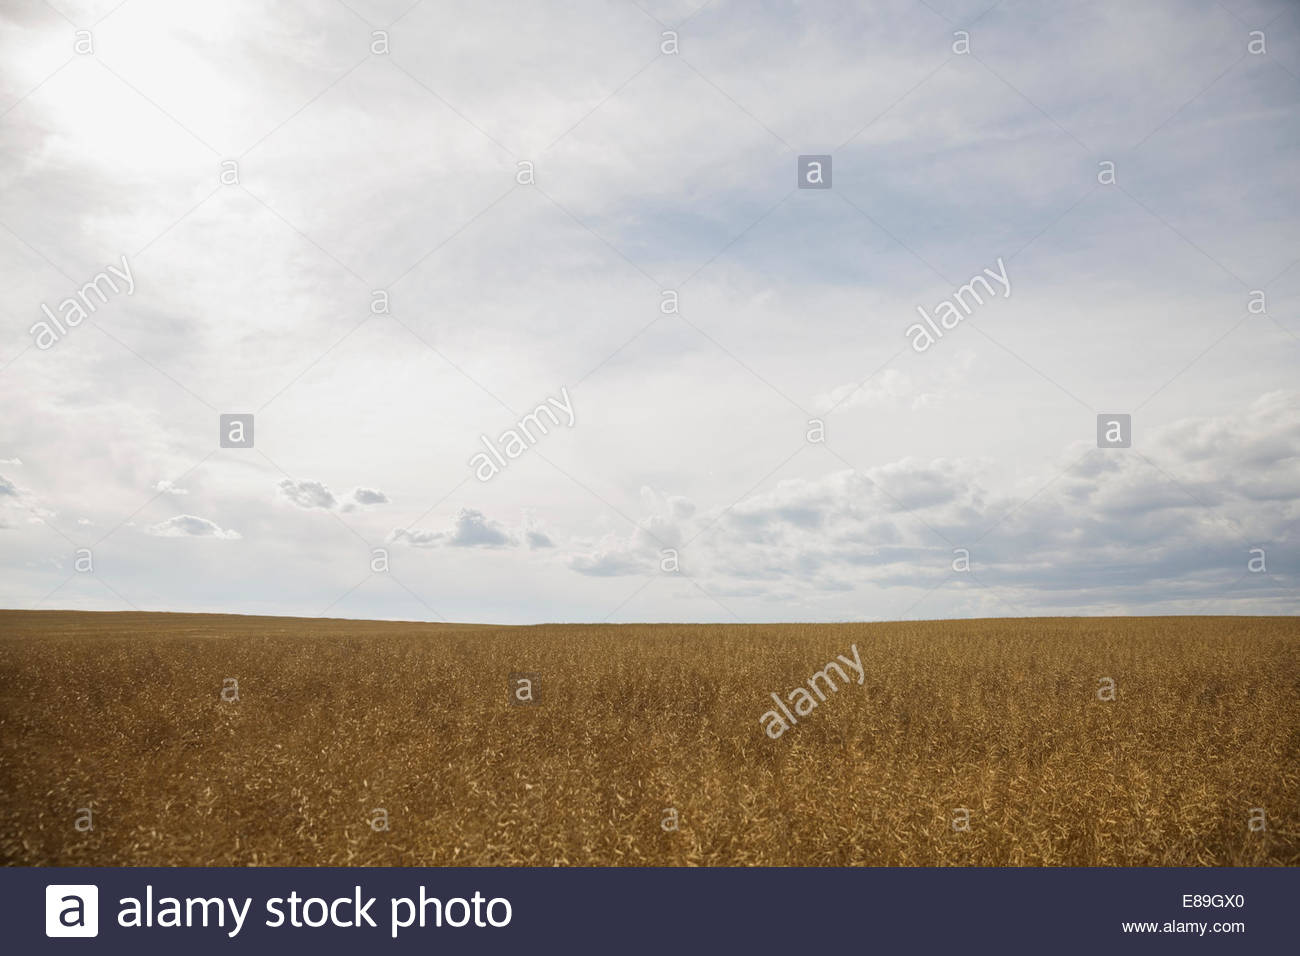 Sunny rural wheat field - Stock Image